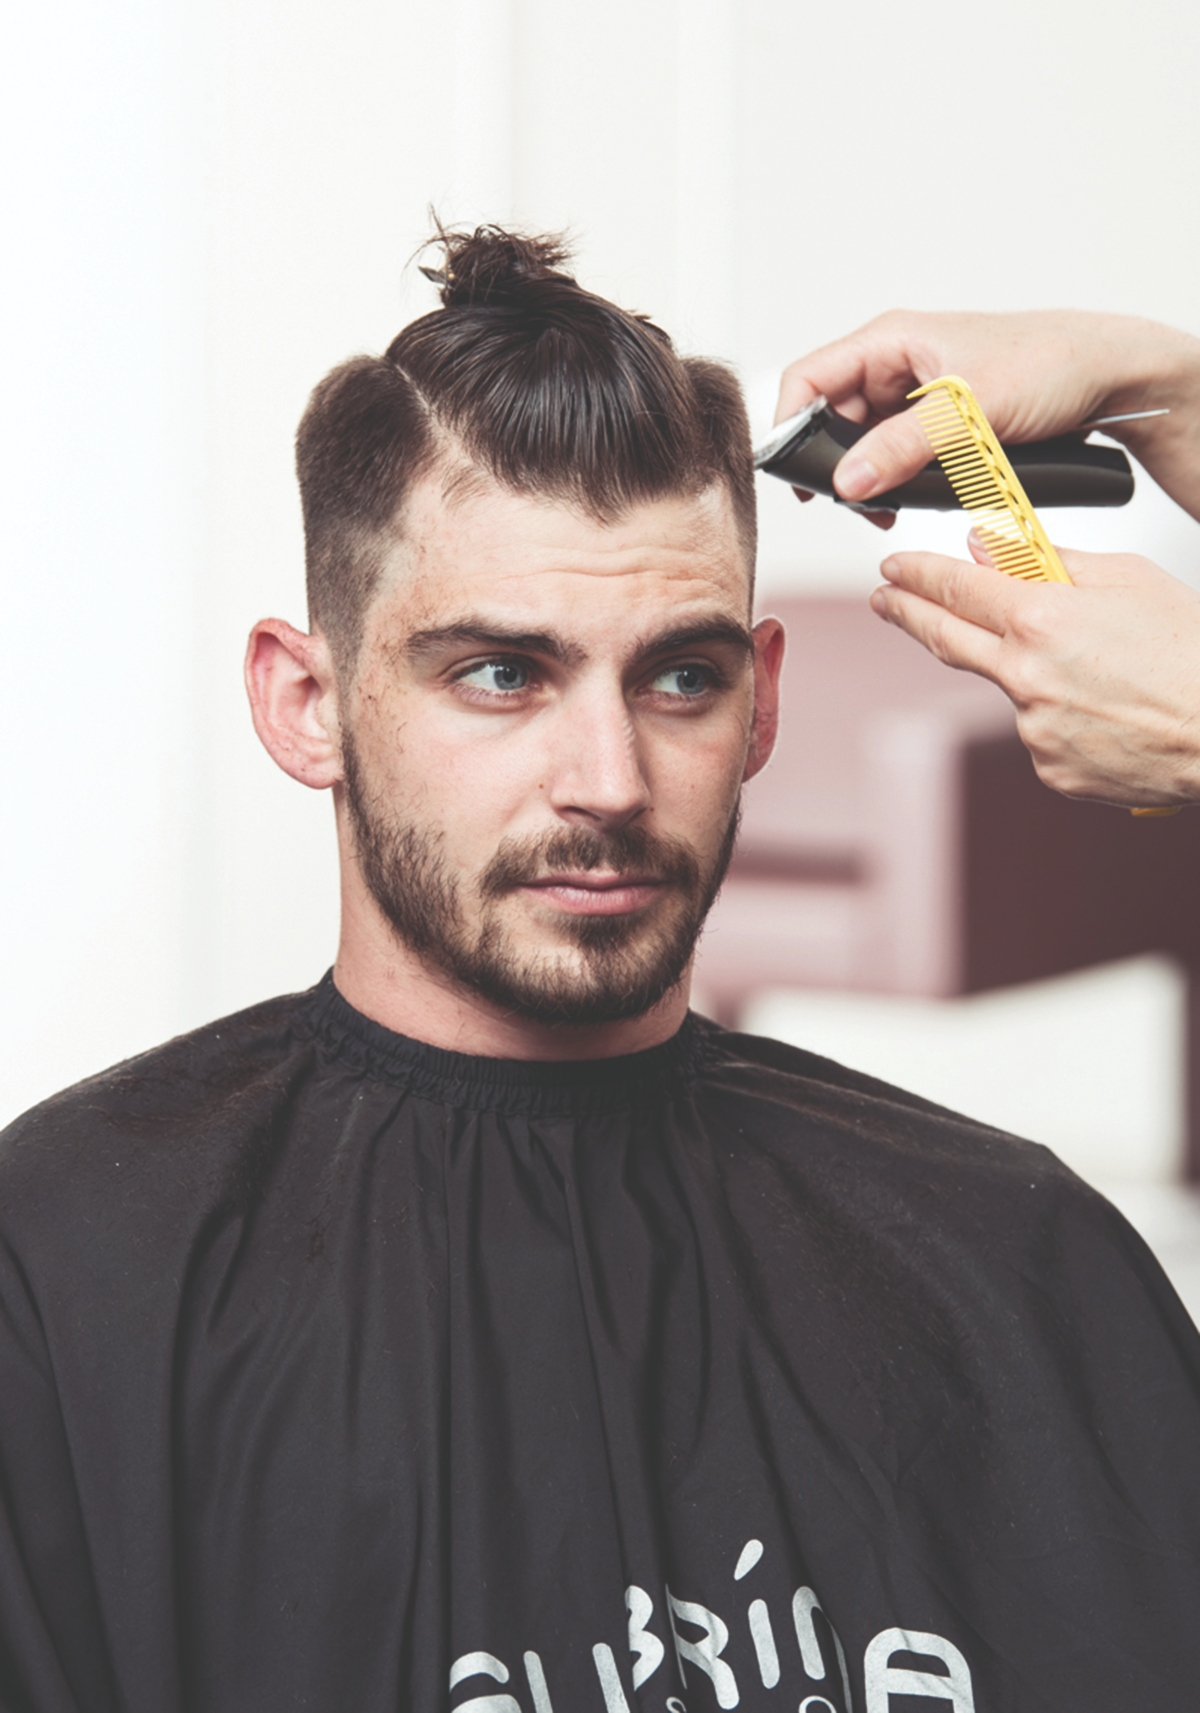 stella_trend_2019_barber_step8